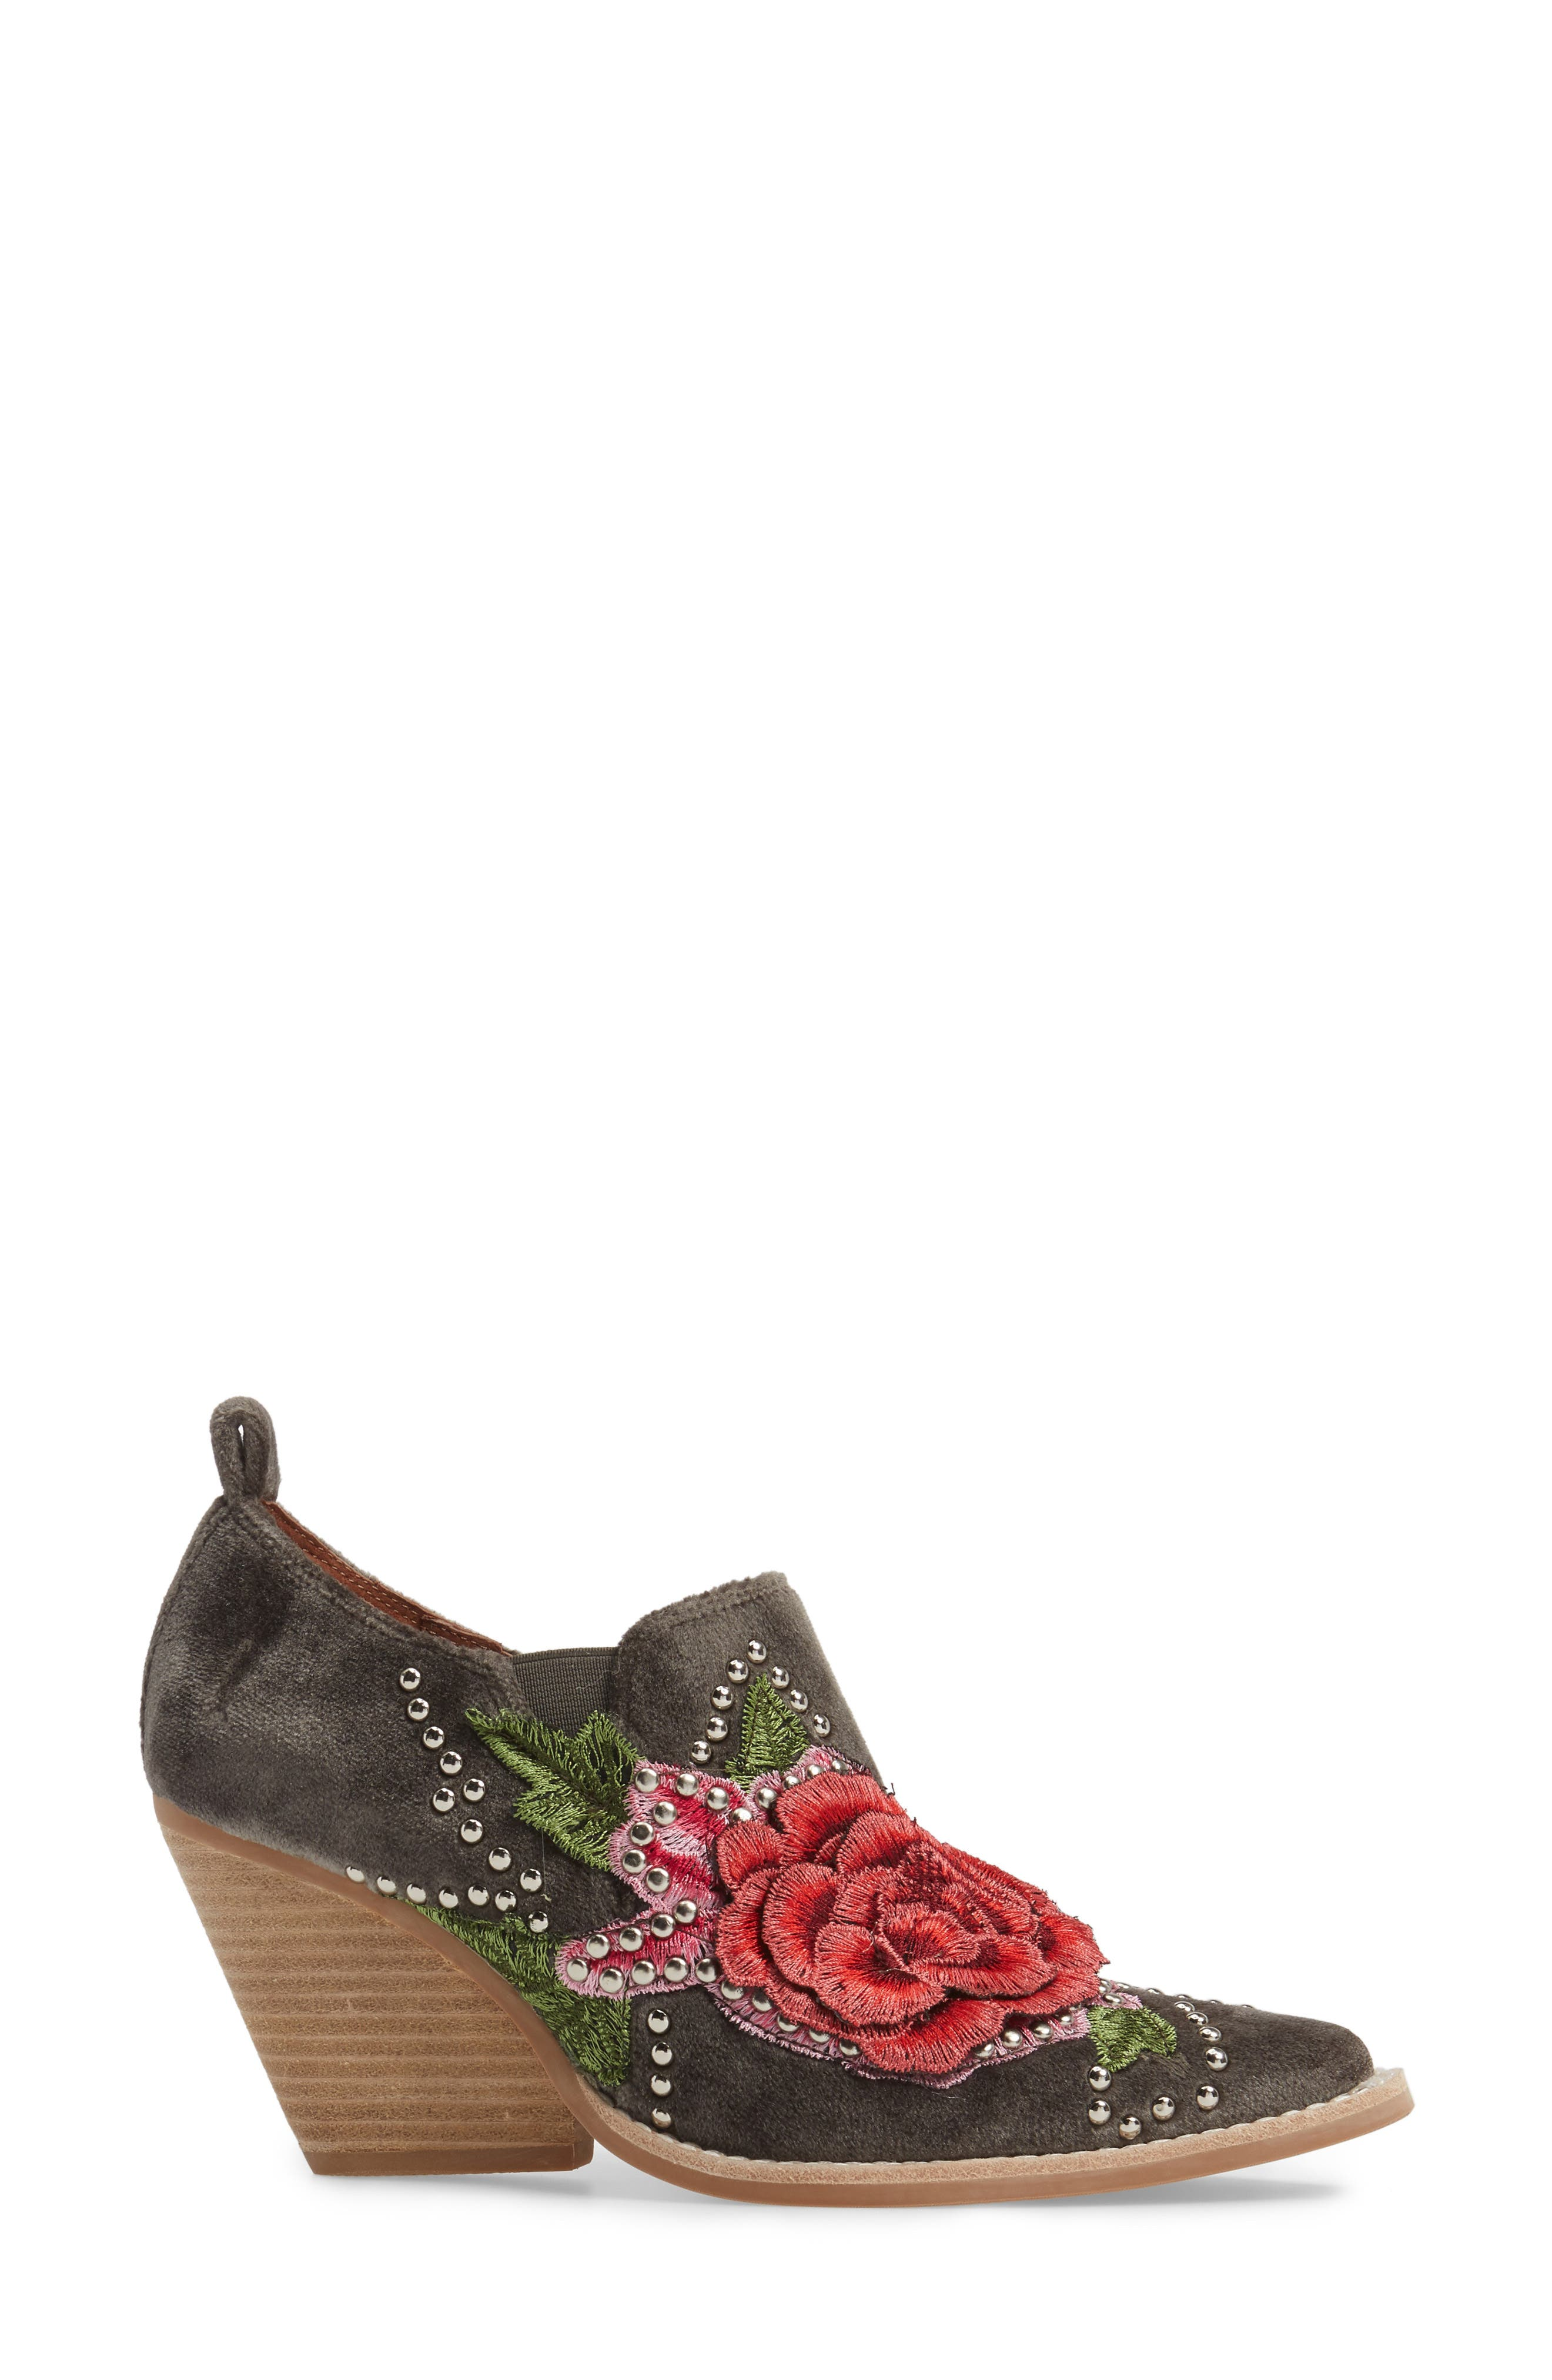 Alternate Image 3  - Jeffrey Campbell Roseola Studded Appliqué Bootie (Women)